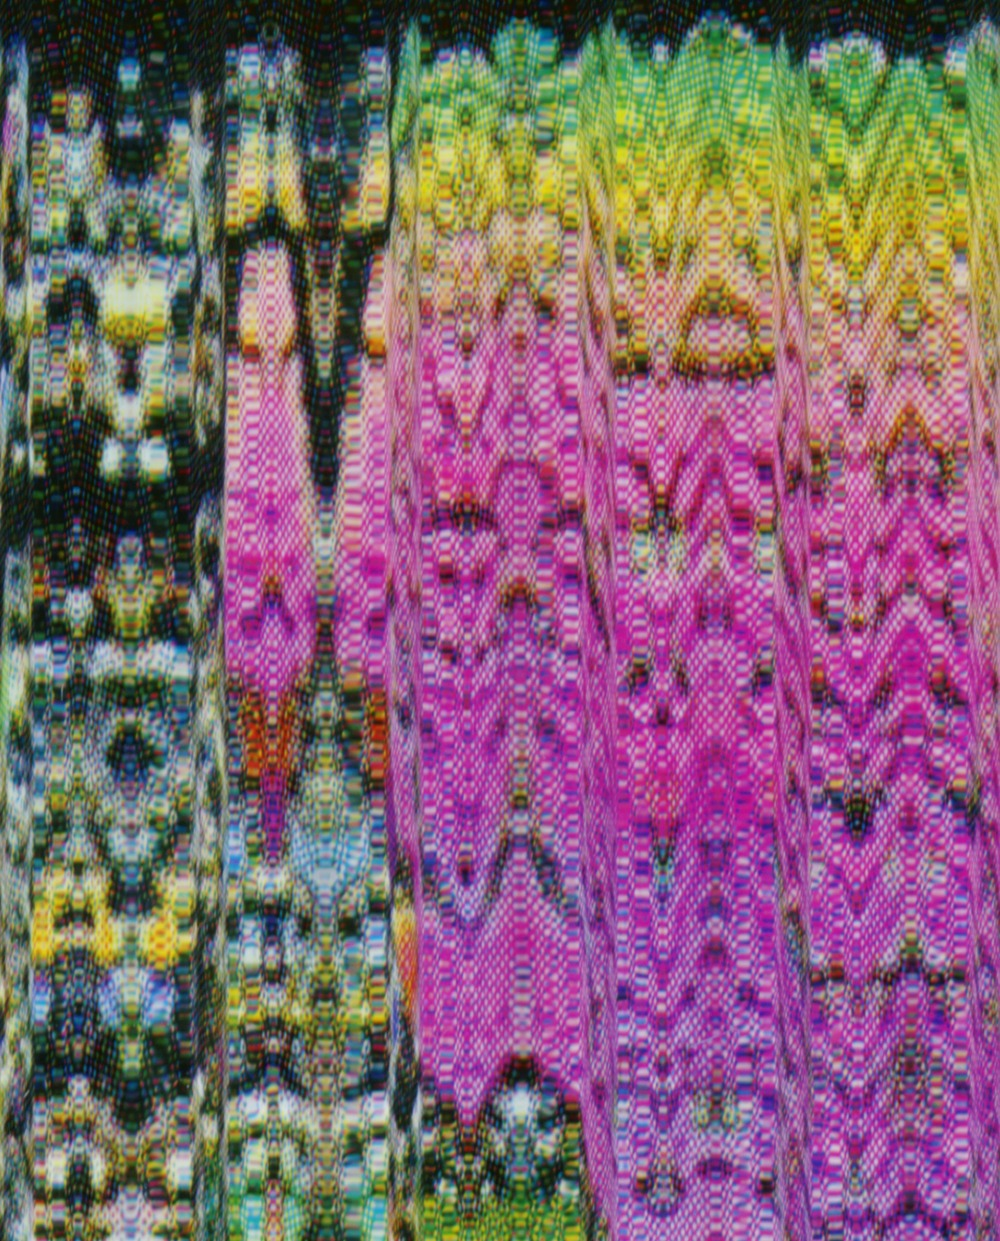 0458_A Prism Scan III (Cross Polarized Chondrite) (detail)-Tauba-Auerbach-large